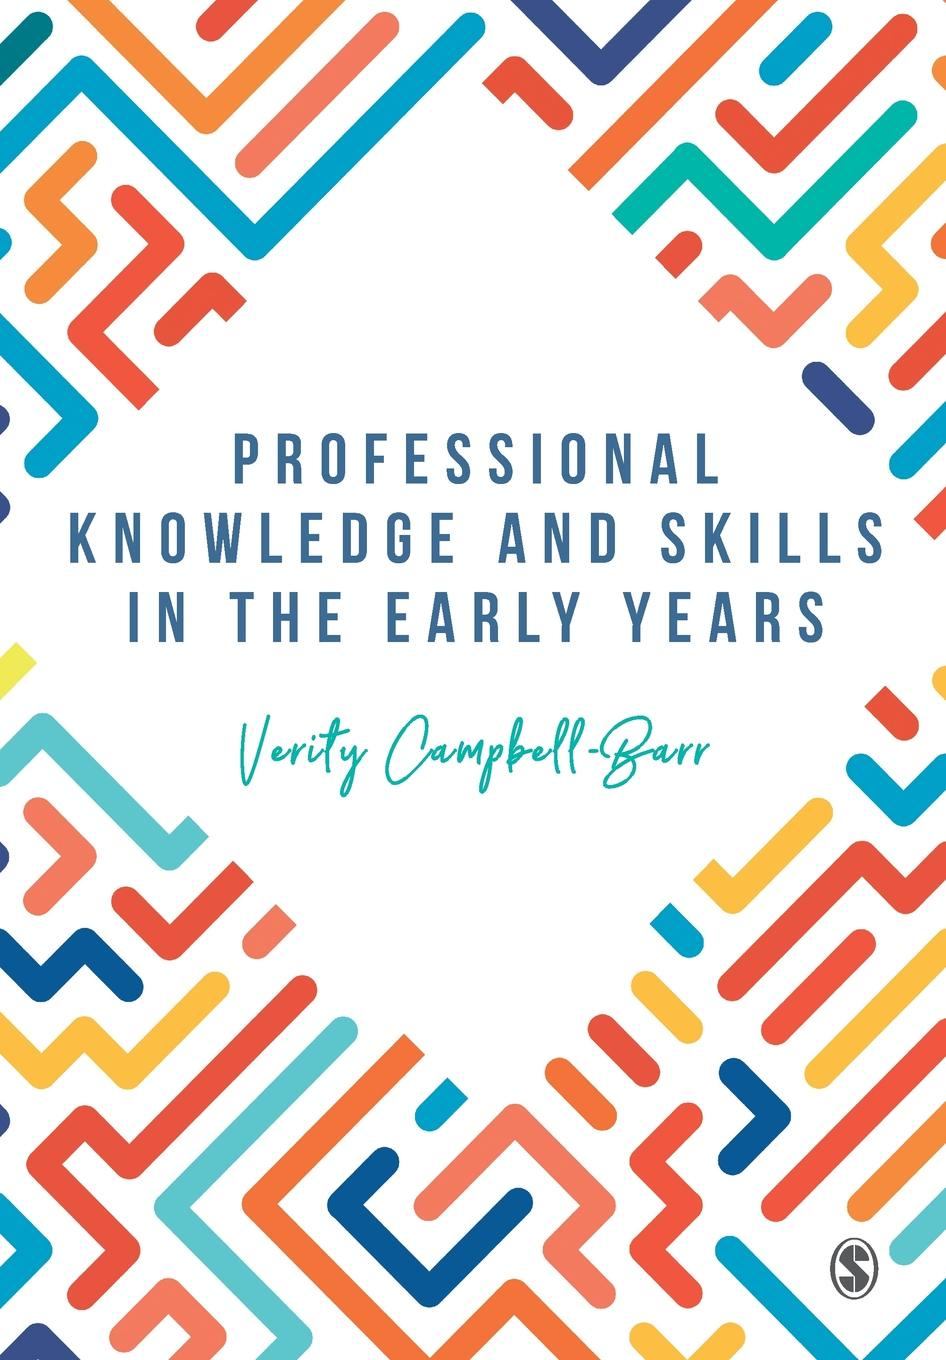 лучшая цена Verity Campbell-Barr Professional Knowledge & Skills in the Early Years